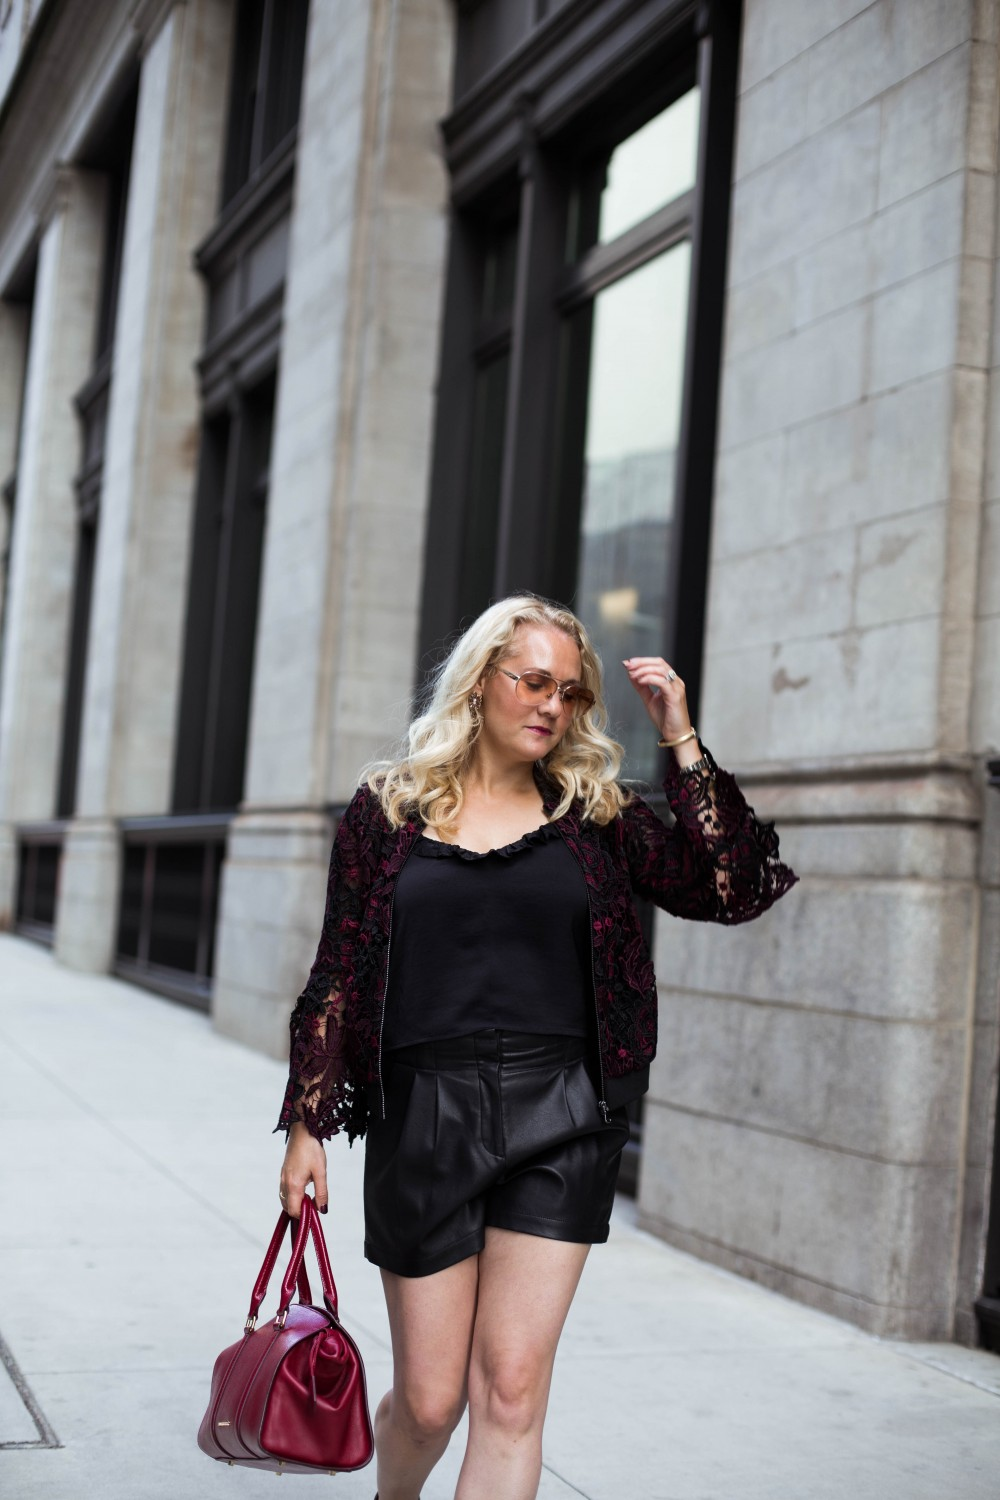 Lace Bomber Jacket-Kobi Halperin for Macy's-NYFW Street Style-NYFW SS18-Outfit Inspiration-Faux Leather Shorts-BCBG-Fall Fashion-Donald Pliner Booties-Geene Boots from Donald J Pliner-Have Need Want 14